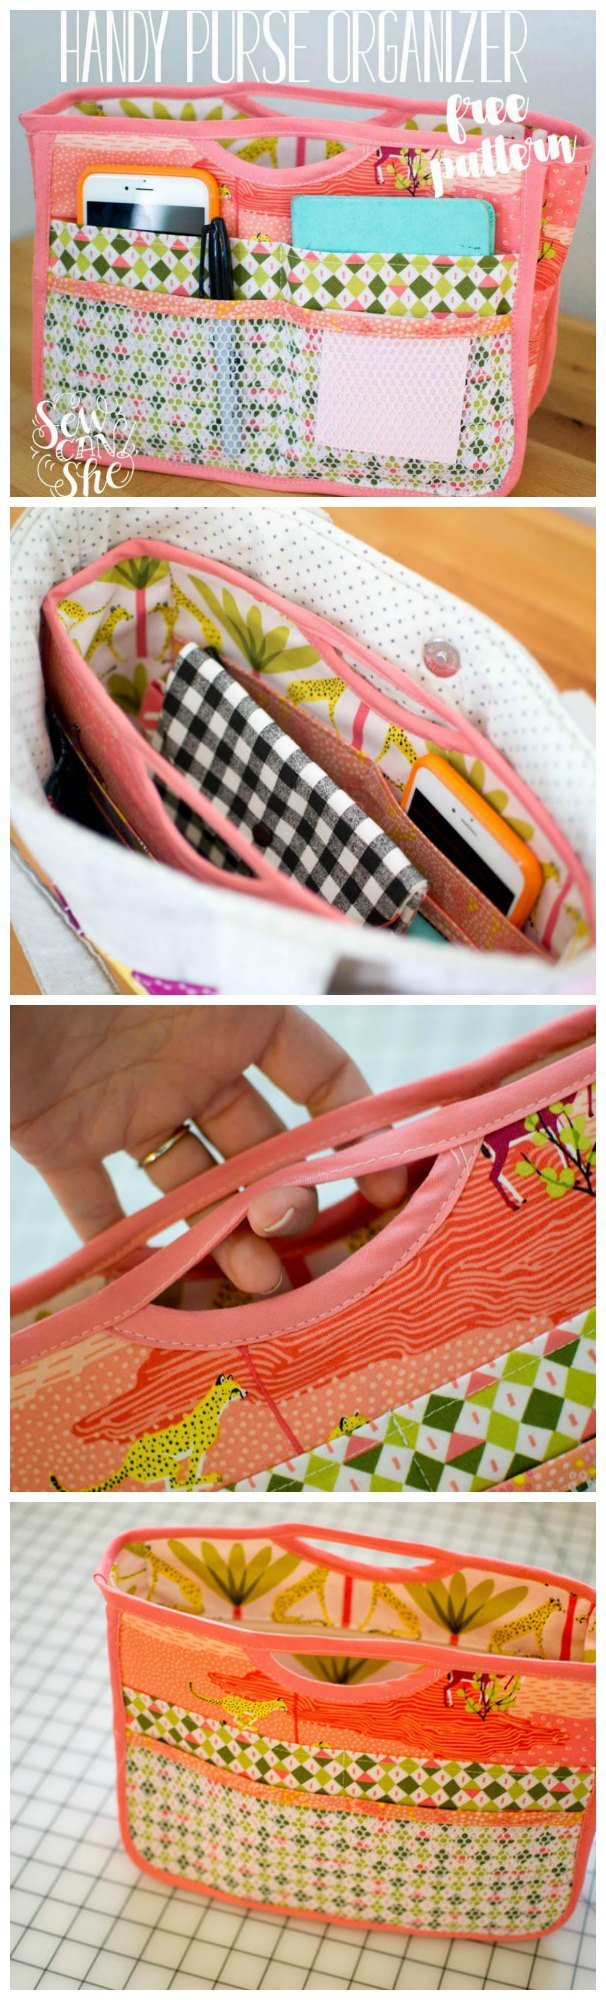 Free sewing pattern for this smart purse organizer. I love using these to transfer